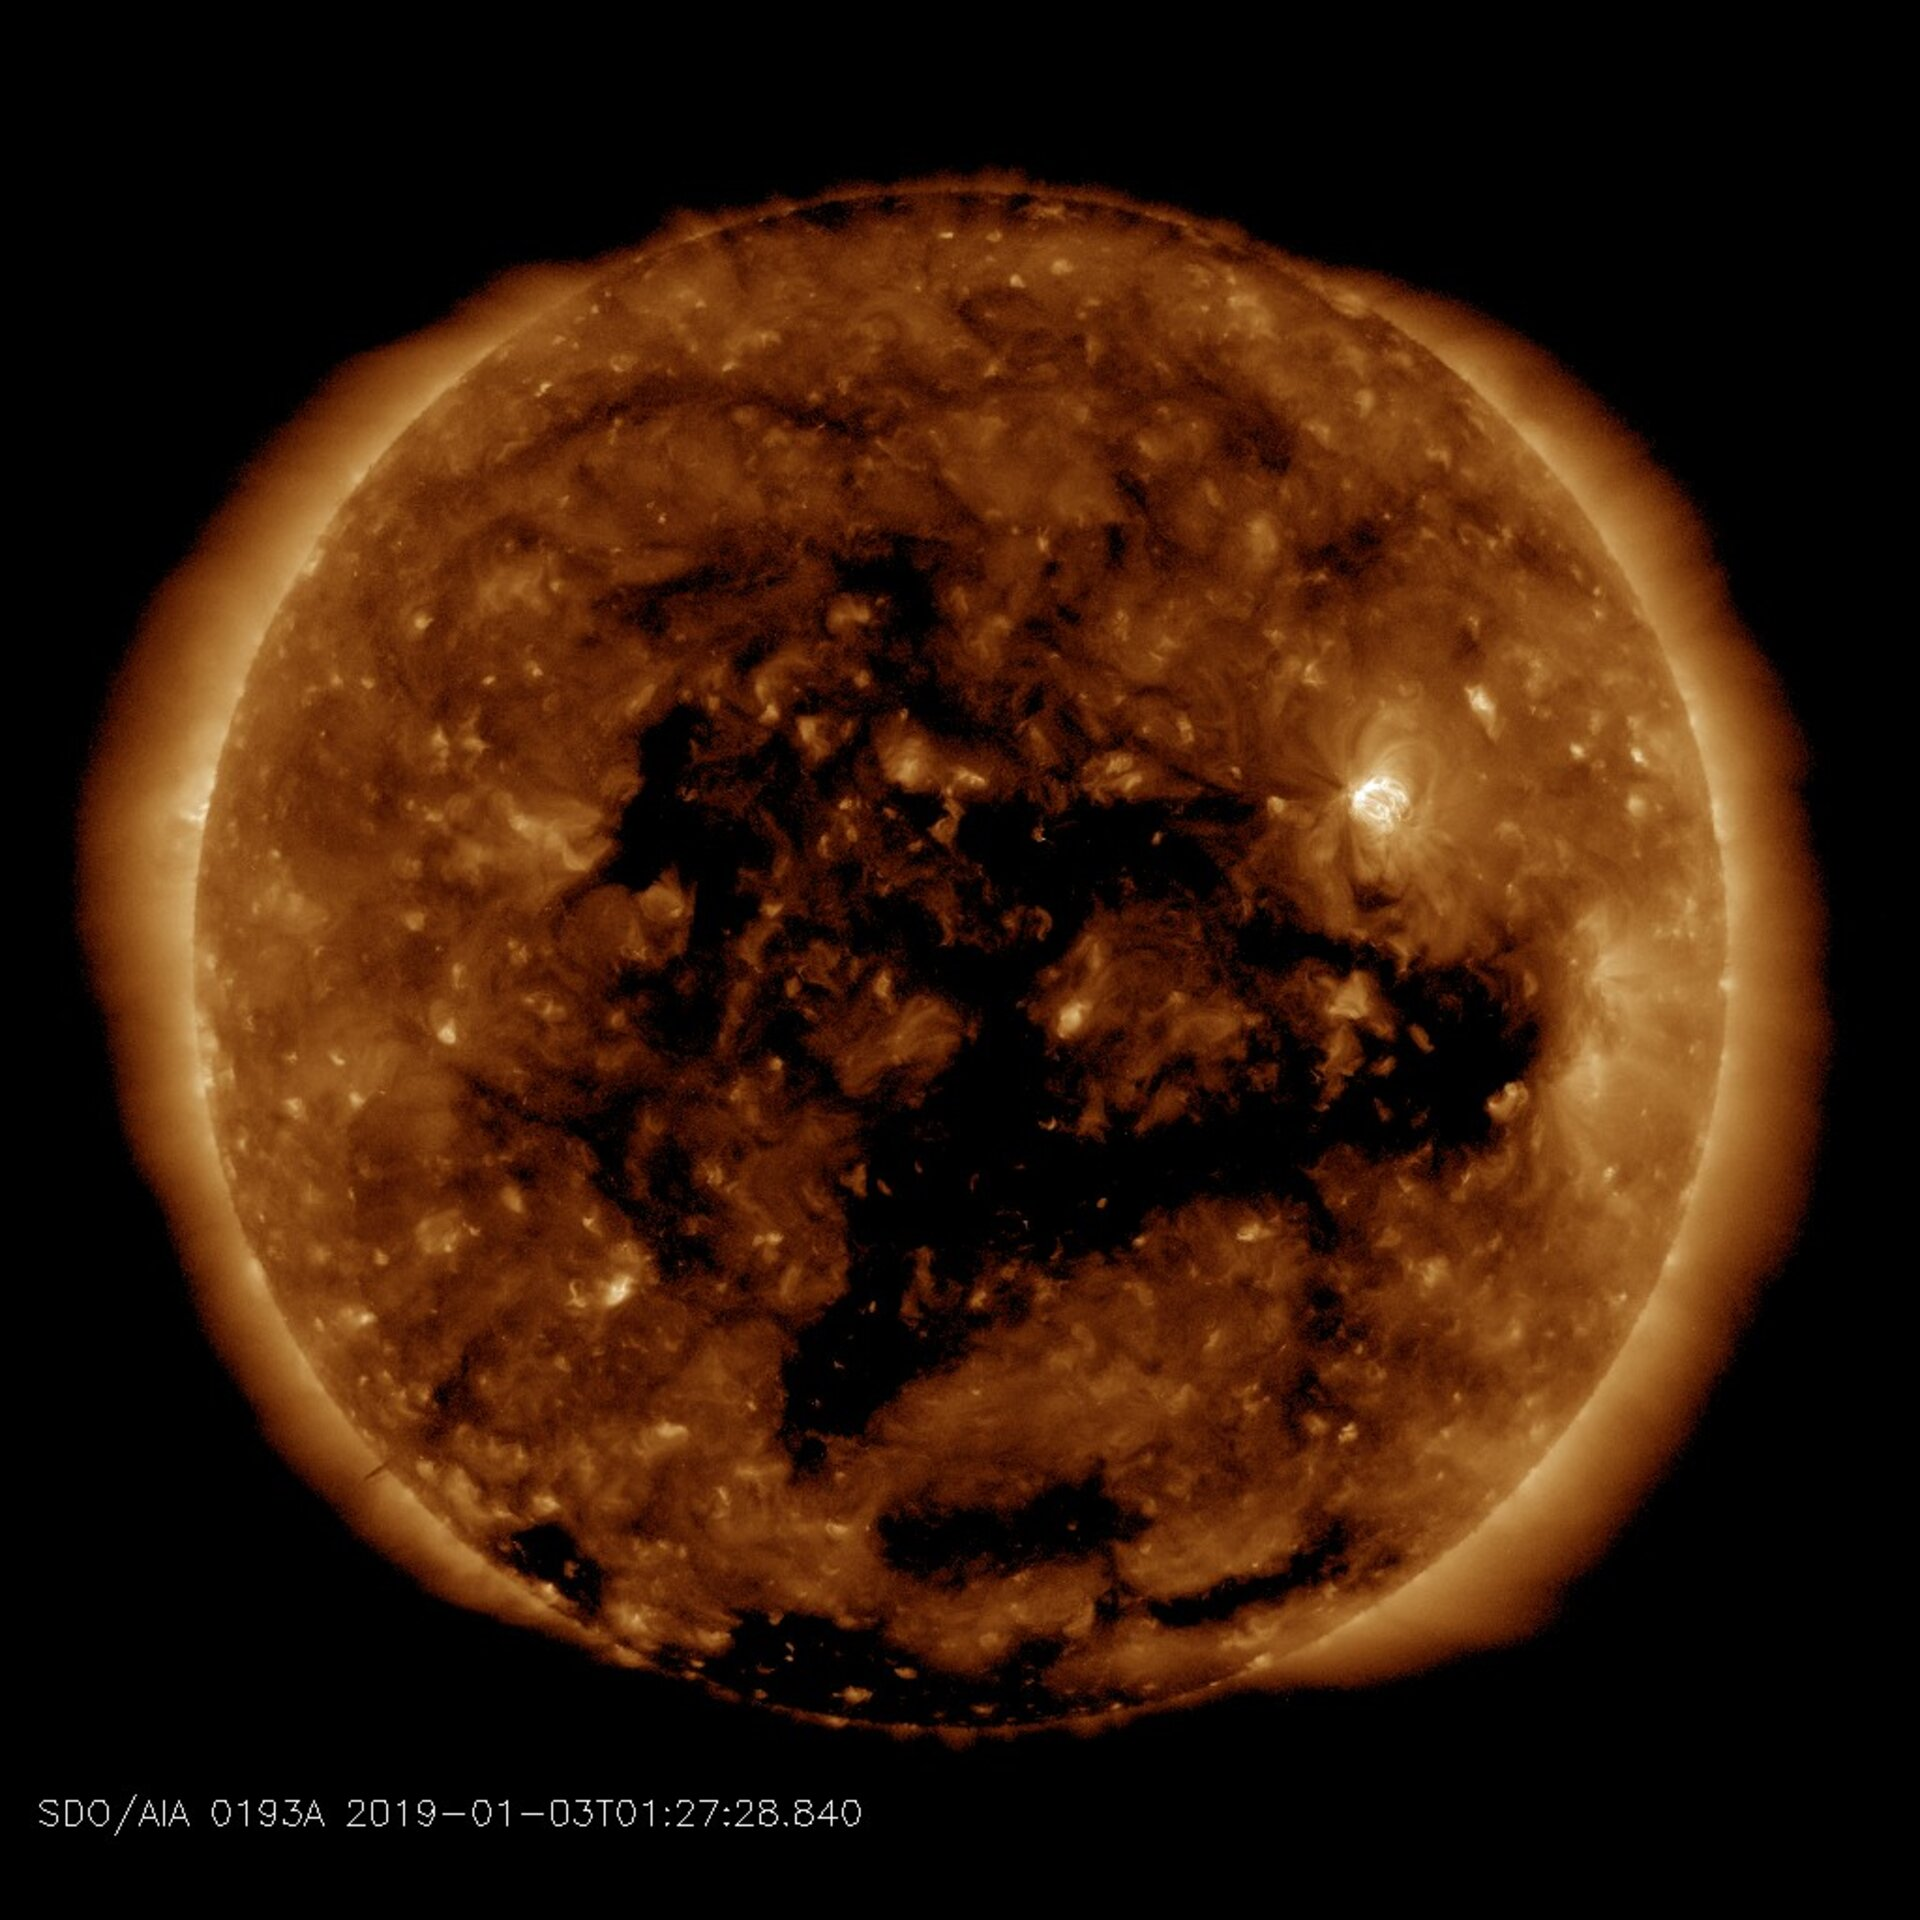 Coronal hole observed from space